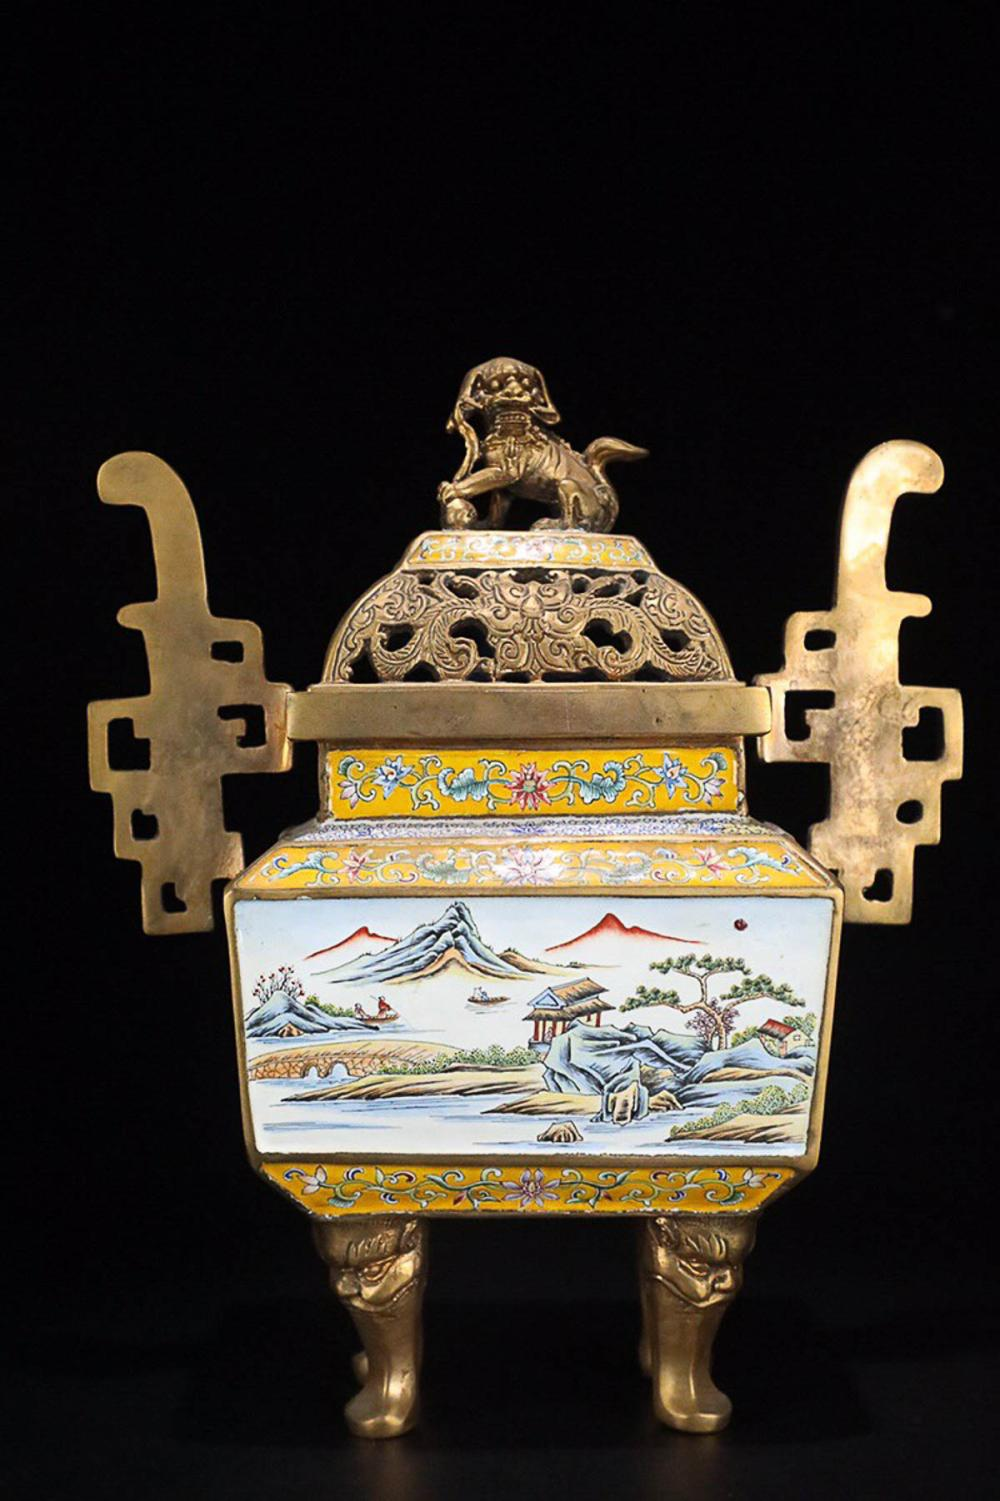 17-19TH CENTURY, A STORY DESIGN GILT BRONZE ENAMEL FOUR FOOT FURNACE, QING DYNASTY